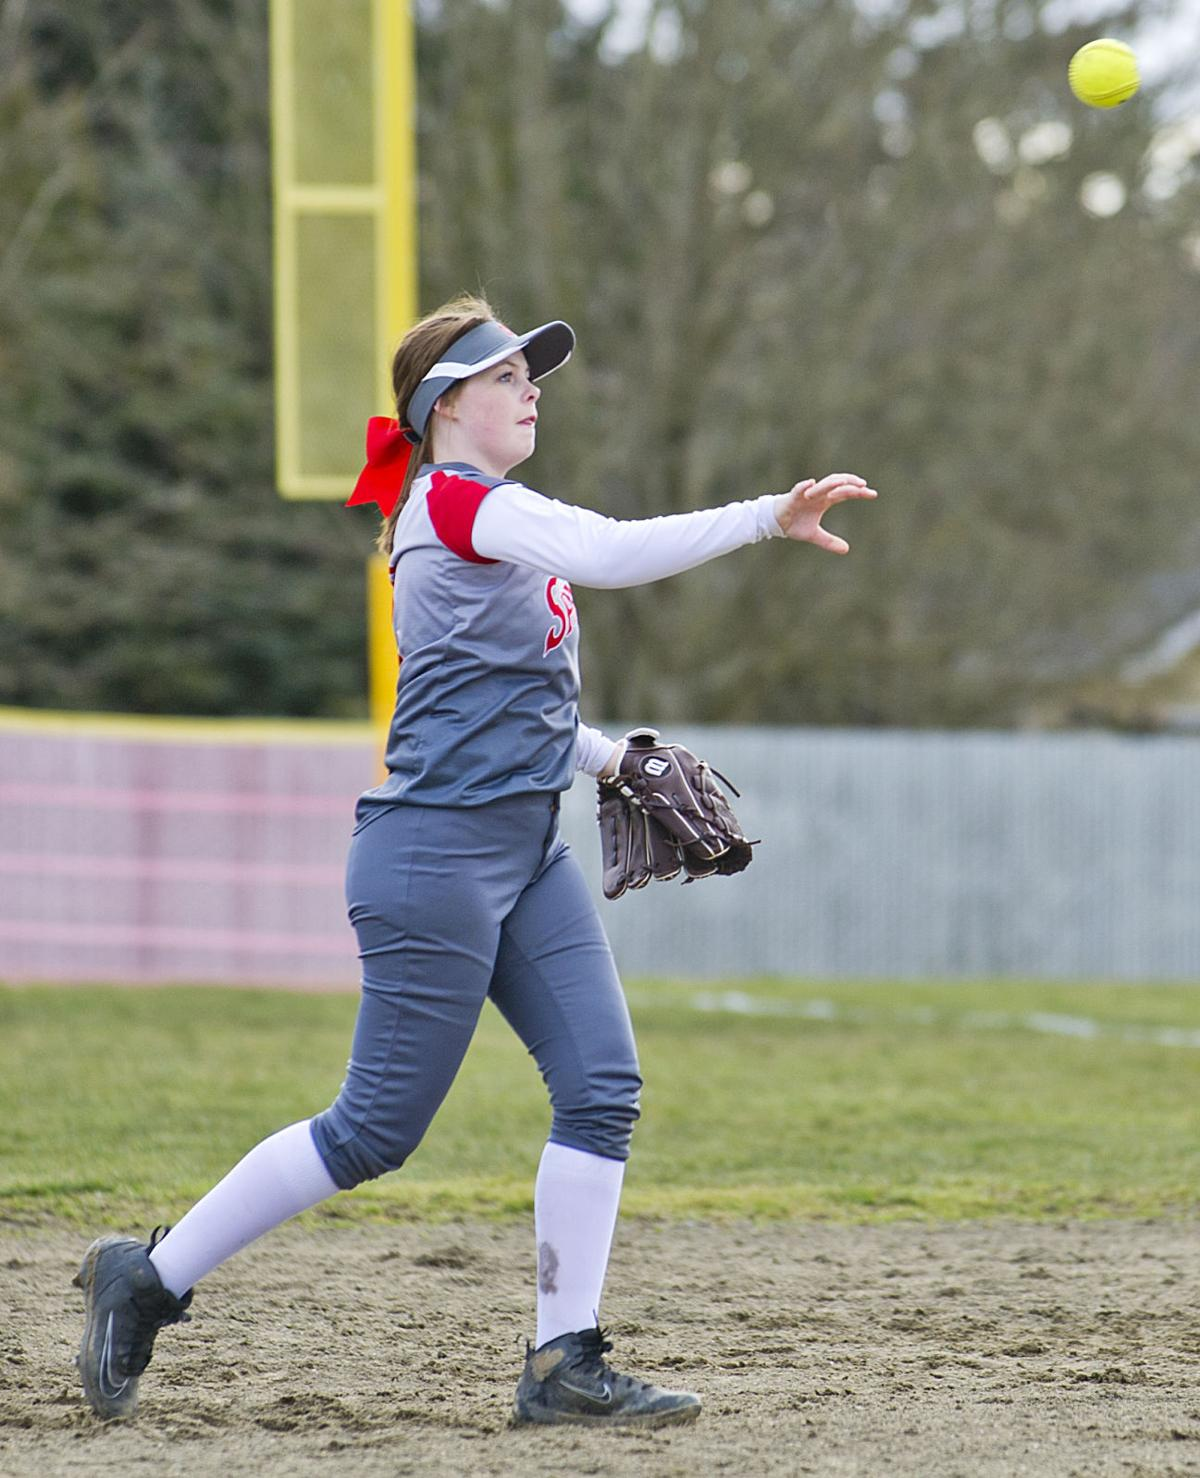 Softball: Anacortes at Stanwood, 3.14.19